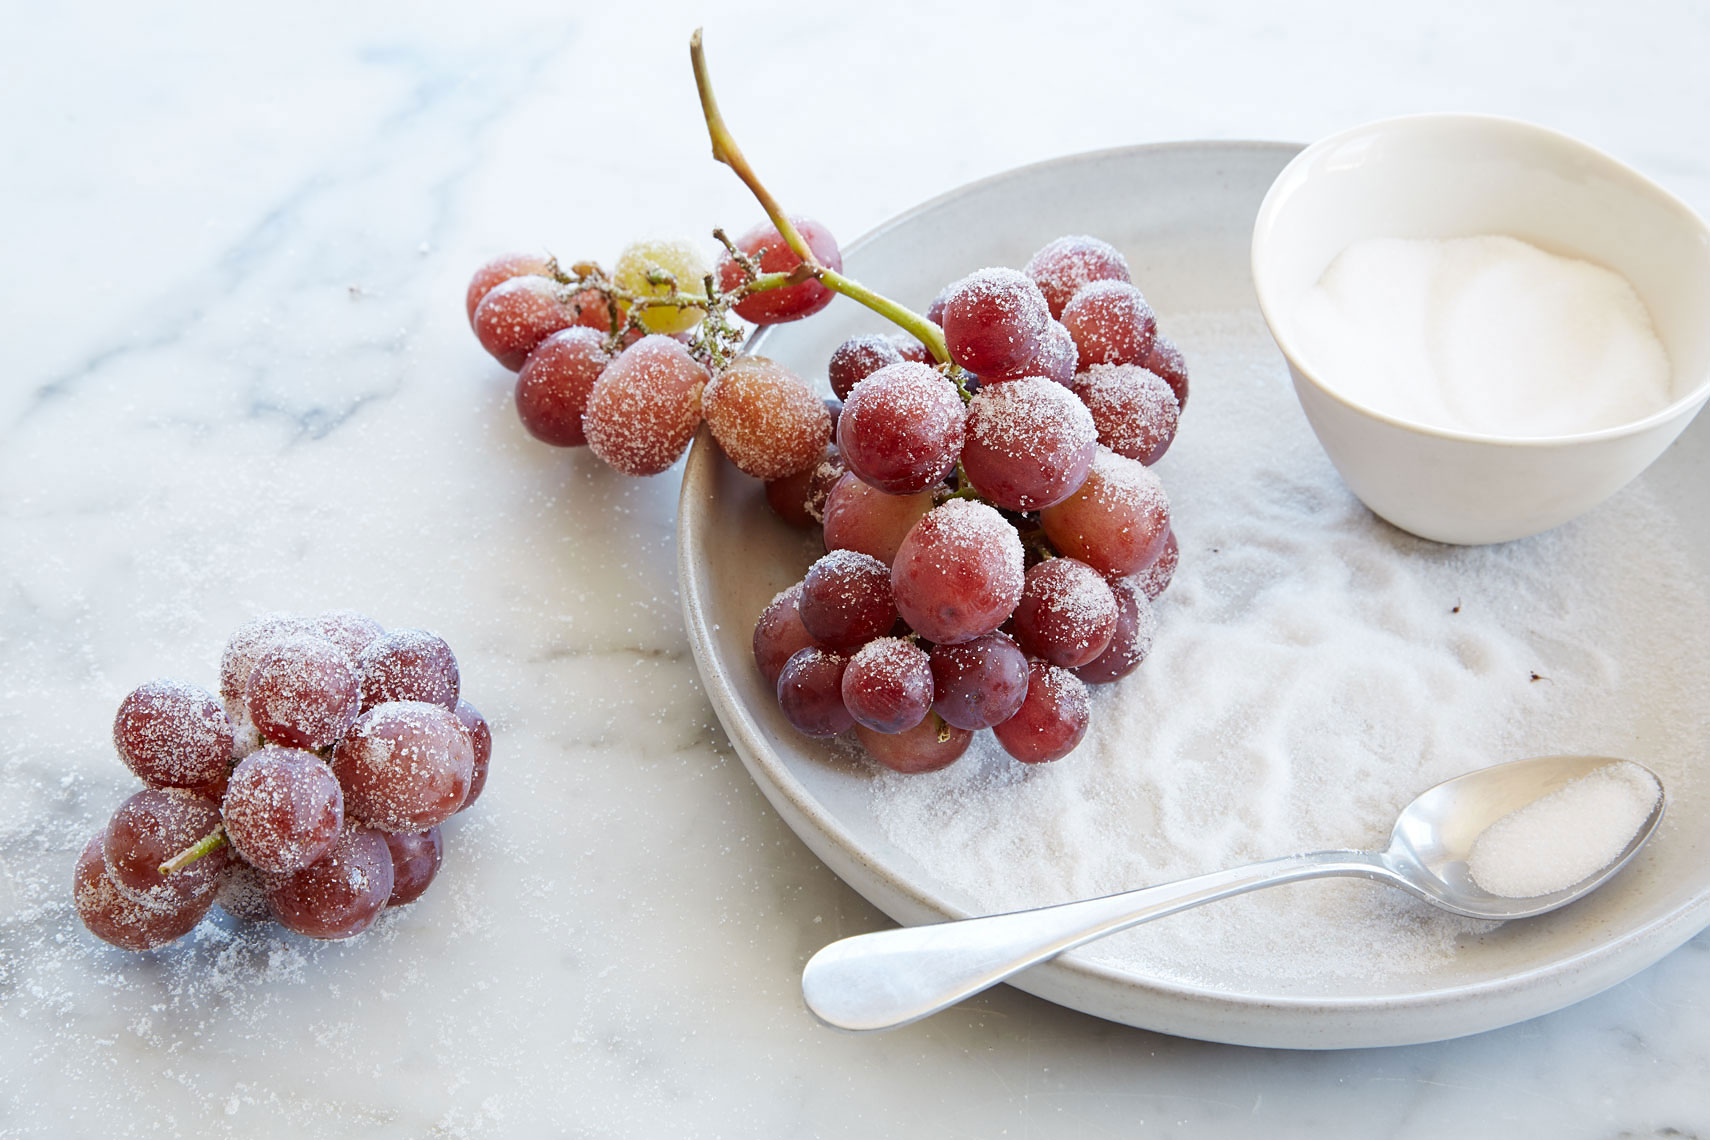 grapes_in_sugar_v2_57.jpg